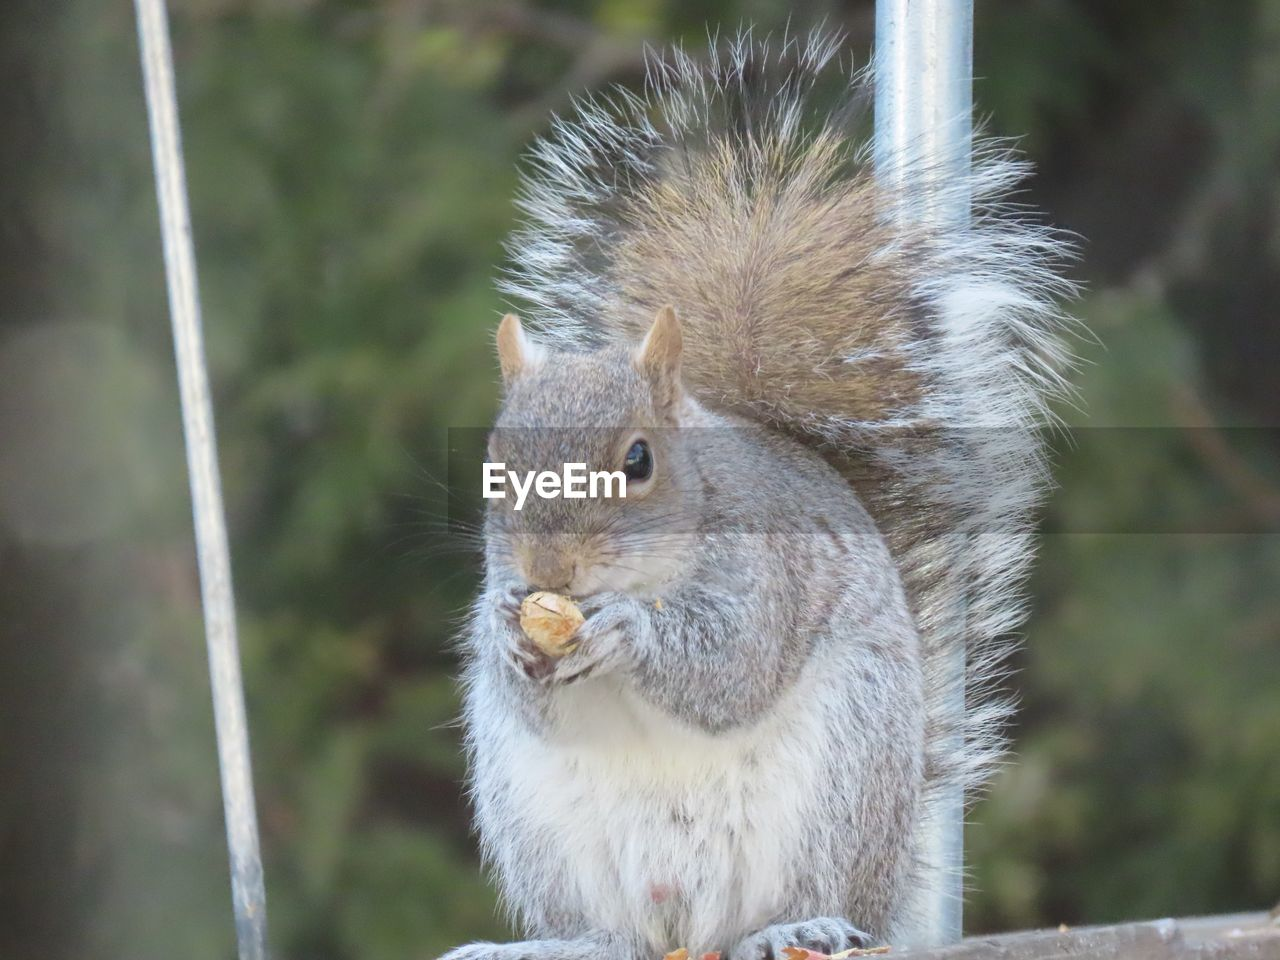 animal, animal themes, animal wildlife, rodent, one animal, mammal, squirrel, animals in the wild, focus on foreground, vertebrate, close-up, no people, day, eating, nature, food, outdoors, holding, food and drink, nut, whisker